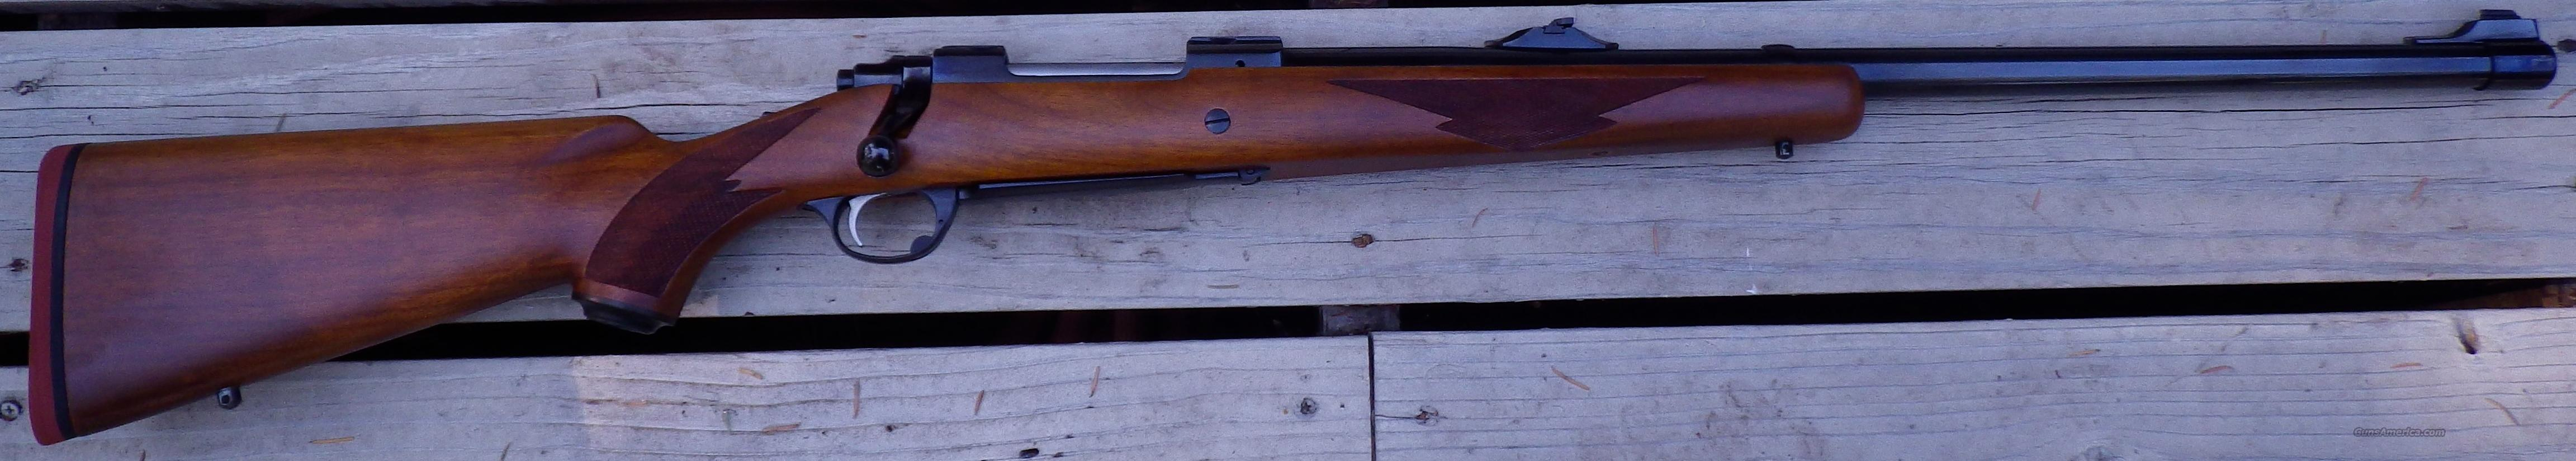 Ruger Model 77 .458 Win. Mag., tang safety, unfired  Guns > Rifles > Ruger Rifles > Model 77